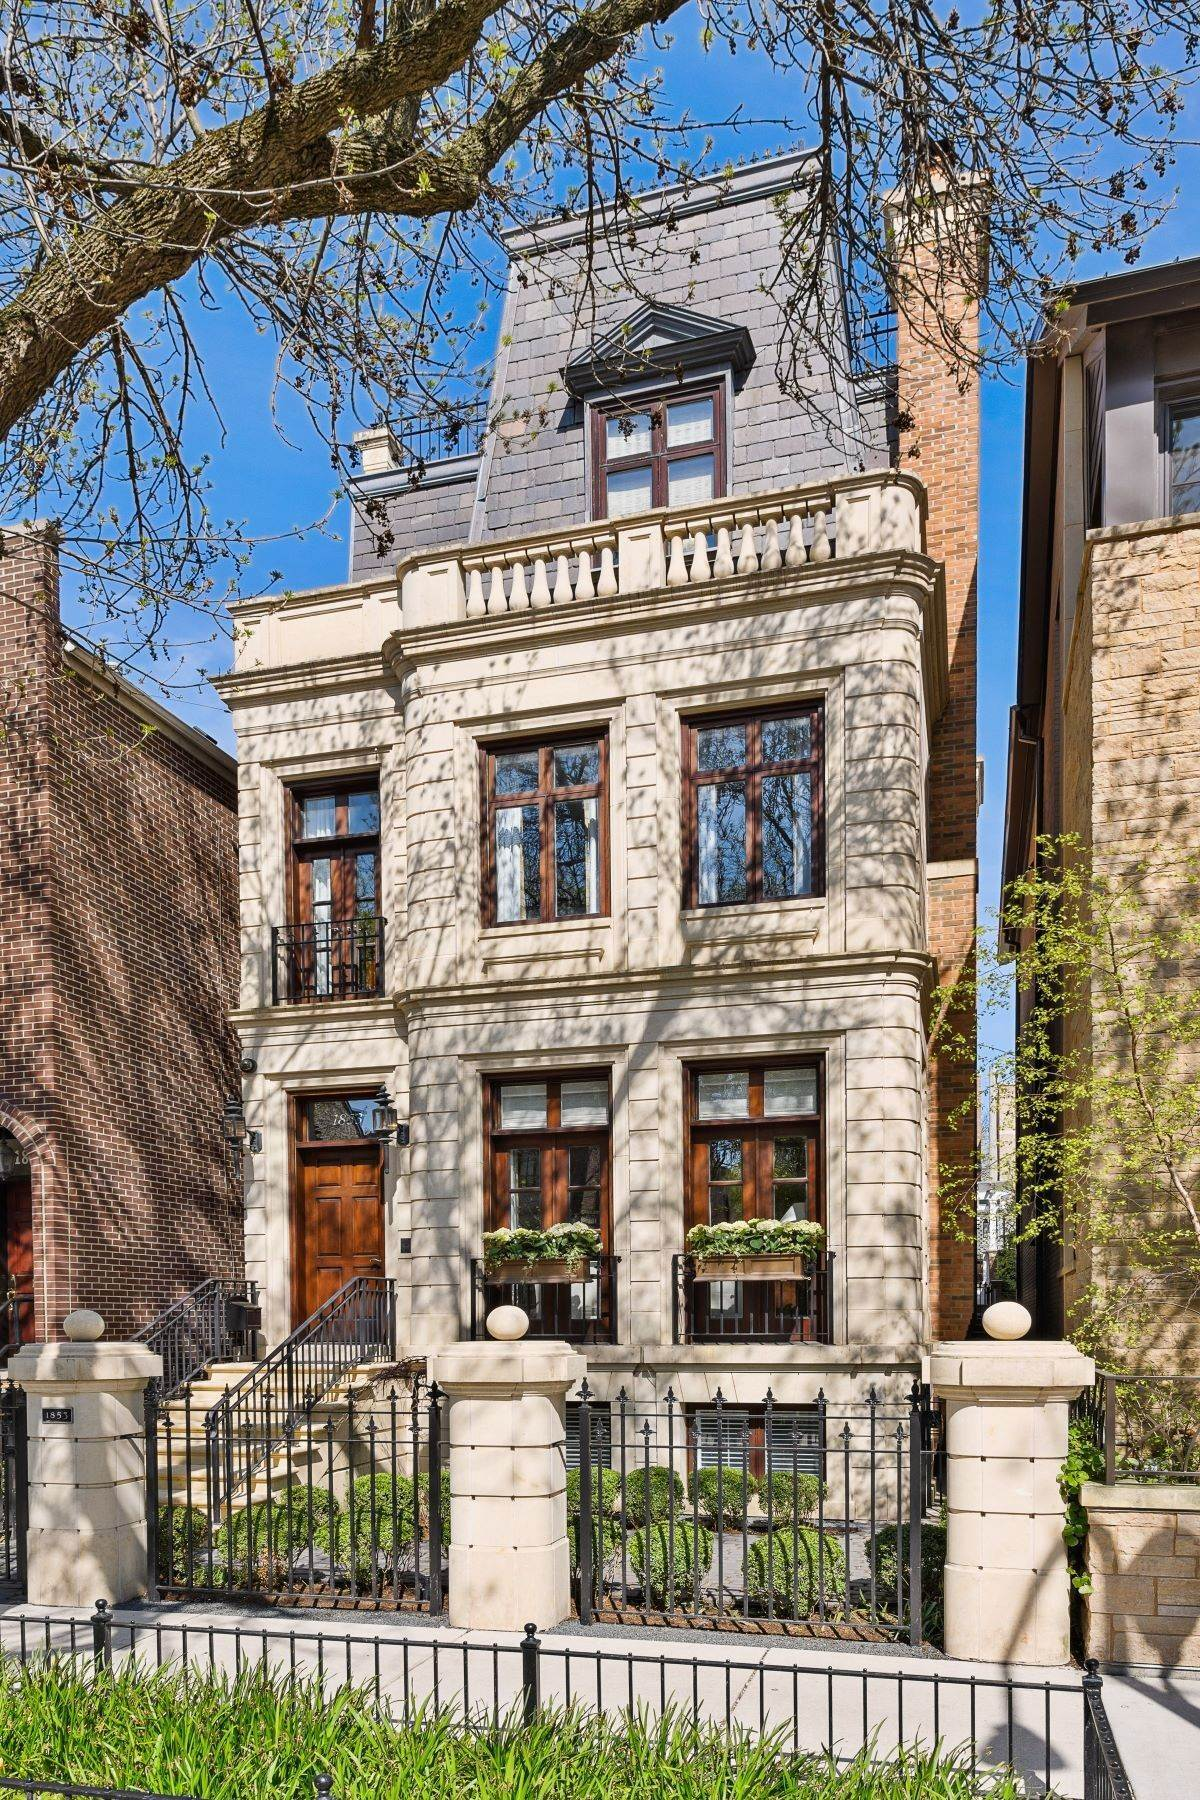 Single Family Homes for Sale at Stunning and Incredibly Designed Home 1853 N Orchard Street Chicago, Illinois 60614 United States